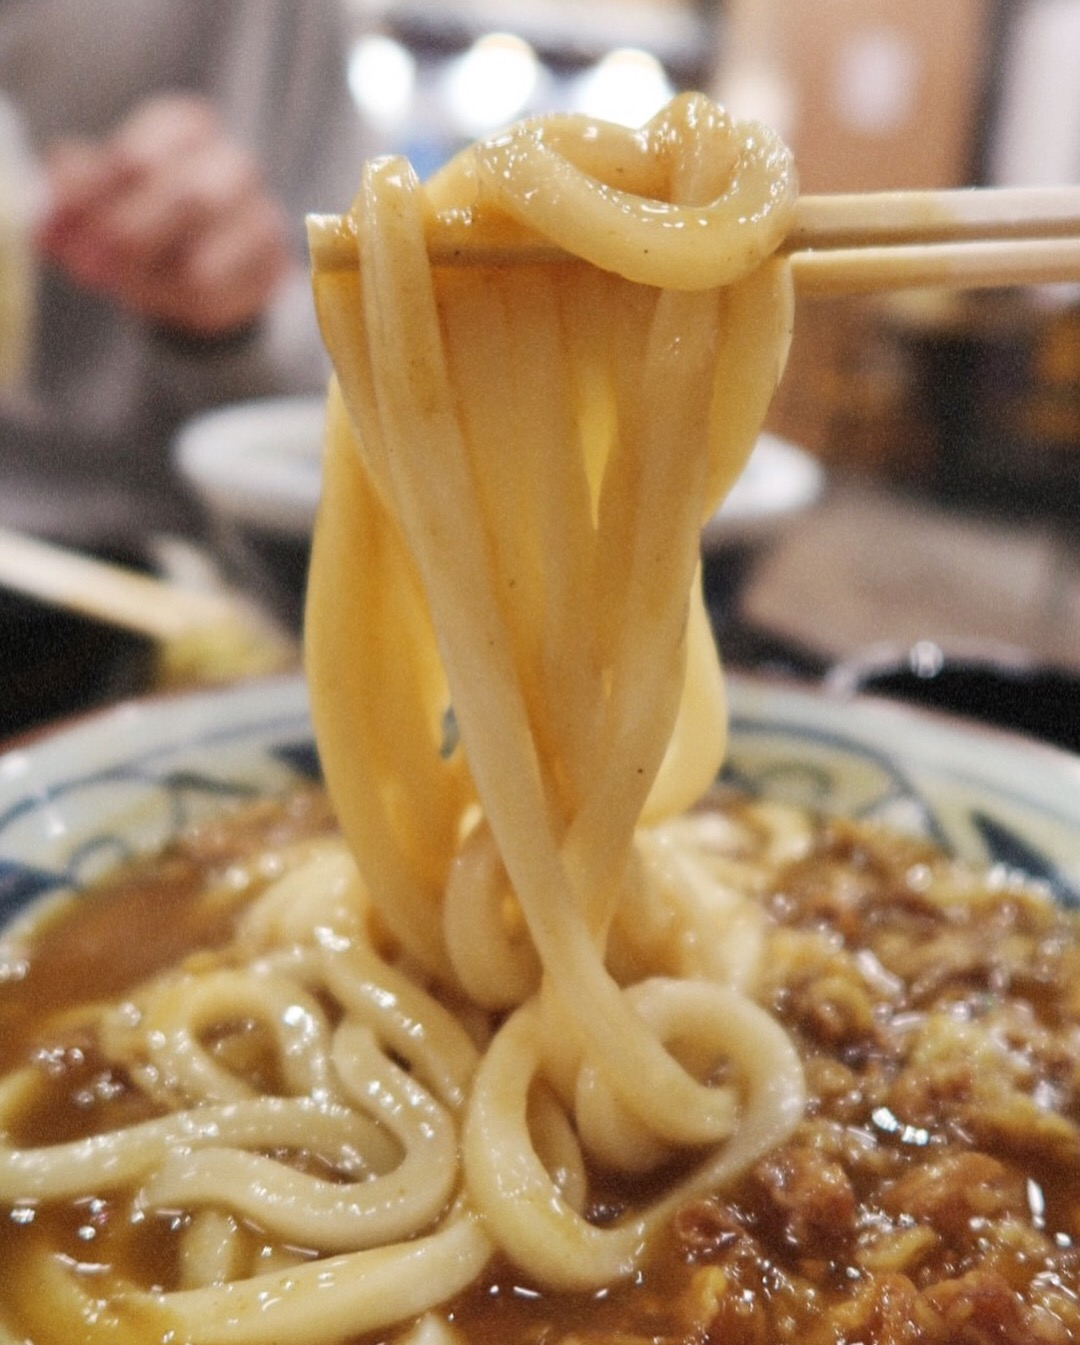 A close up shot of Marugame Udon's curry noodle udon bowl with al dente-style noodles.